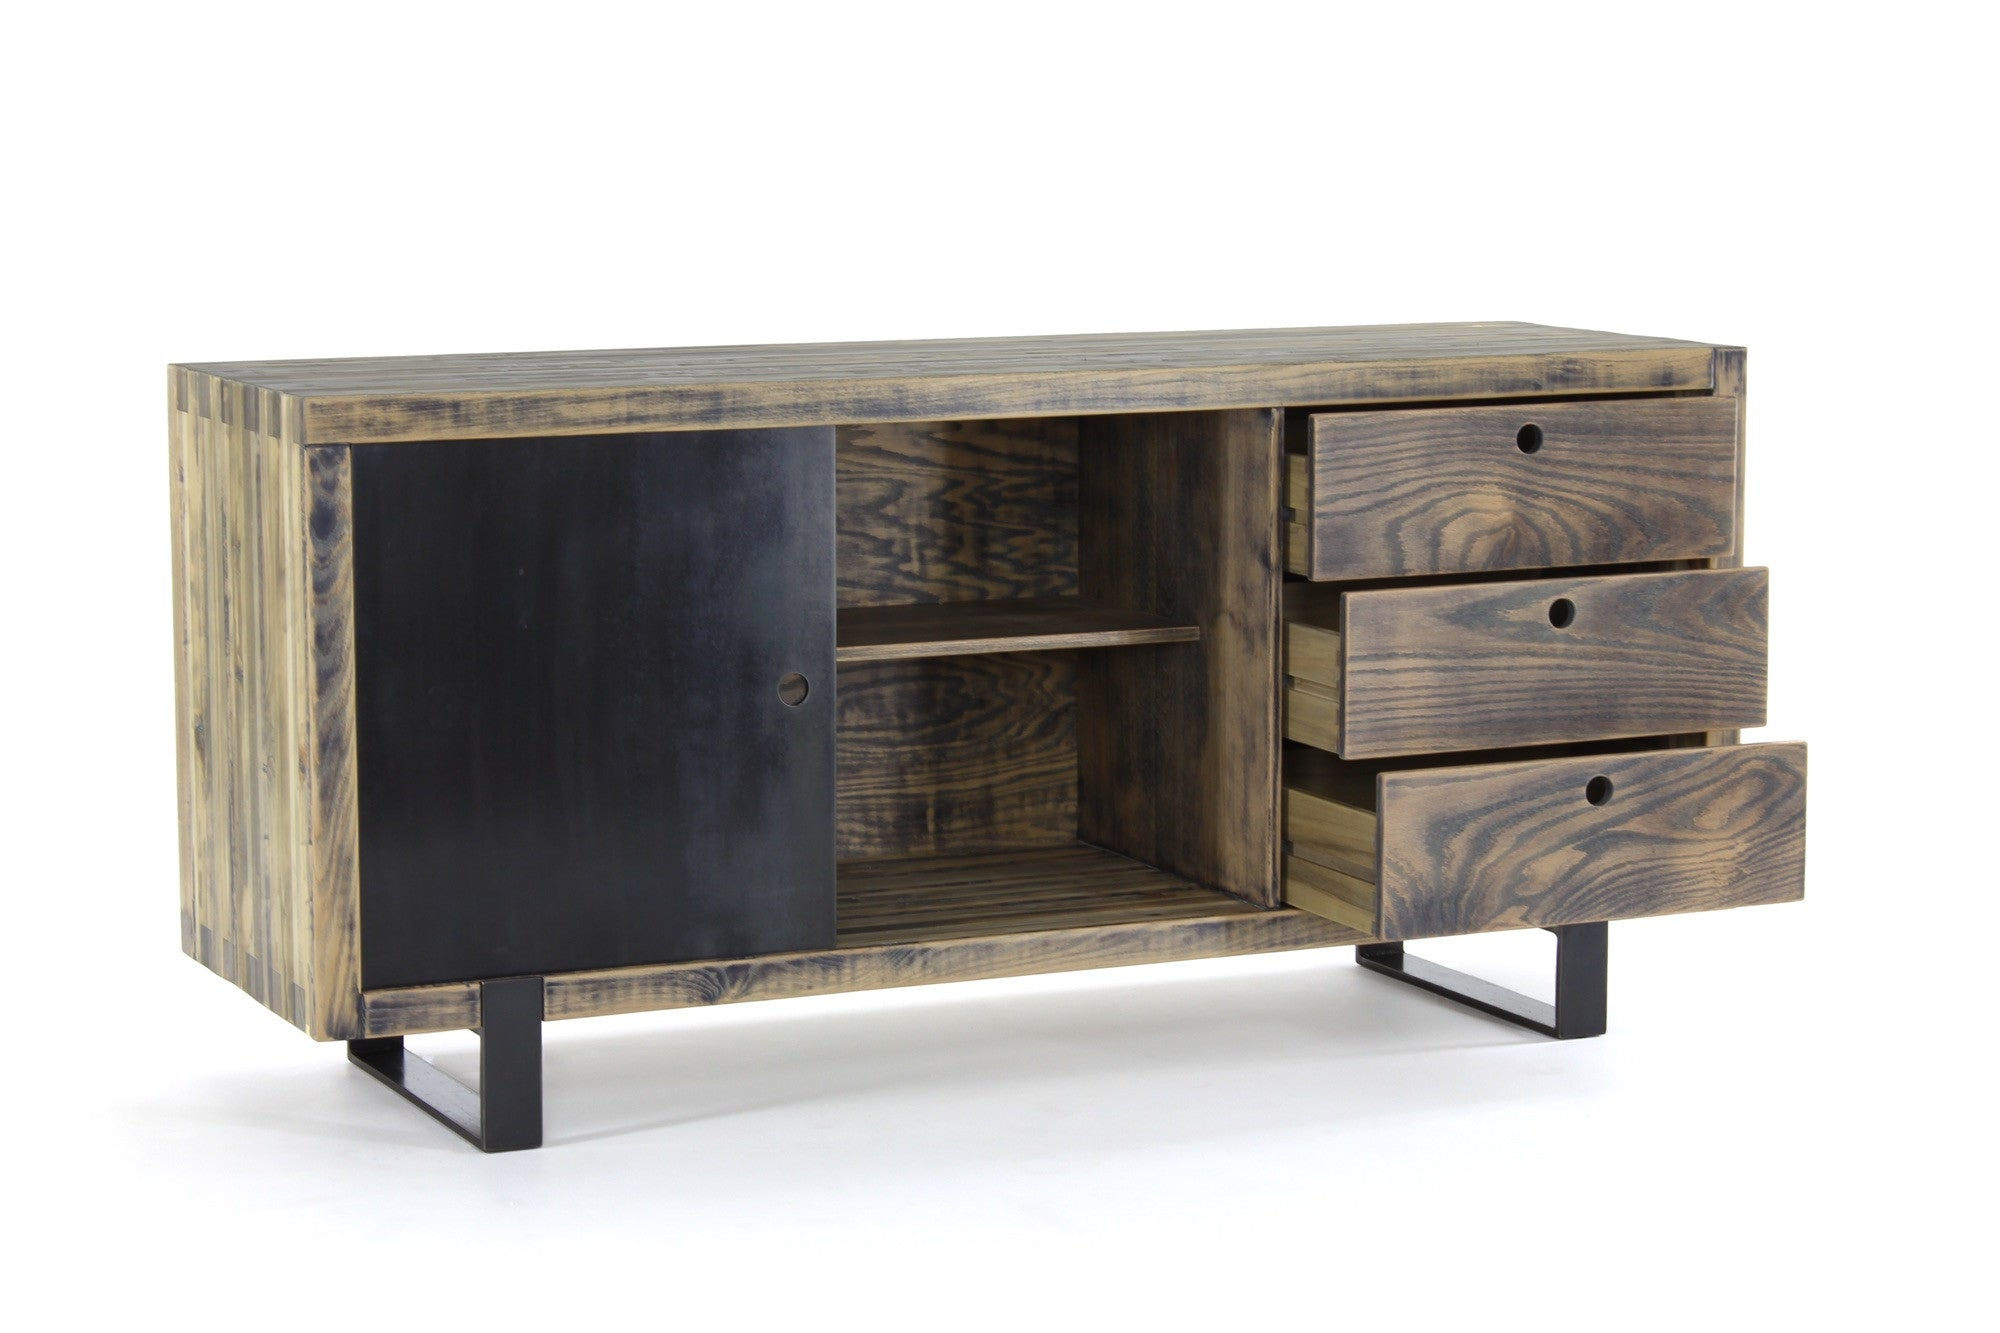 the cupboard | aged wood finish with darkened steel